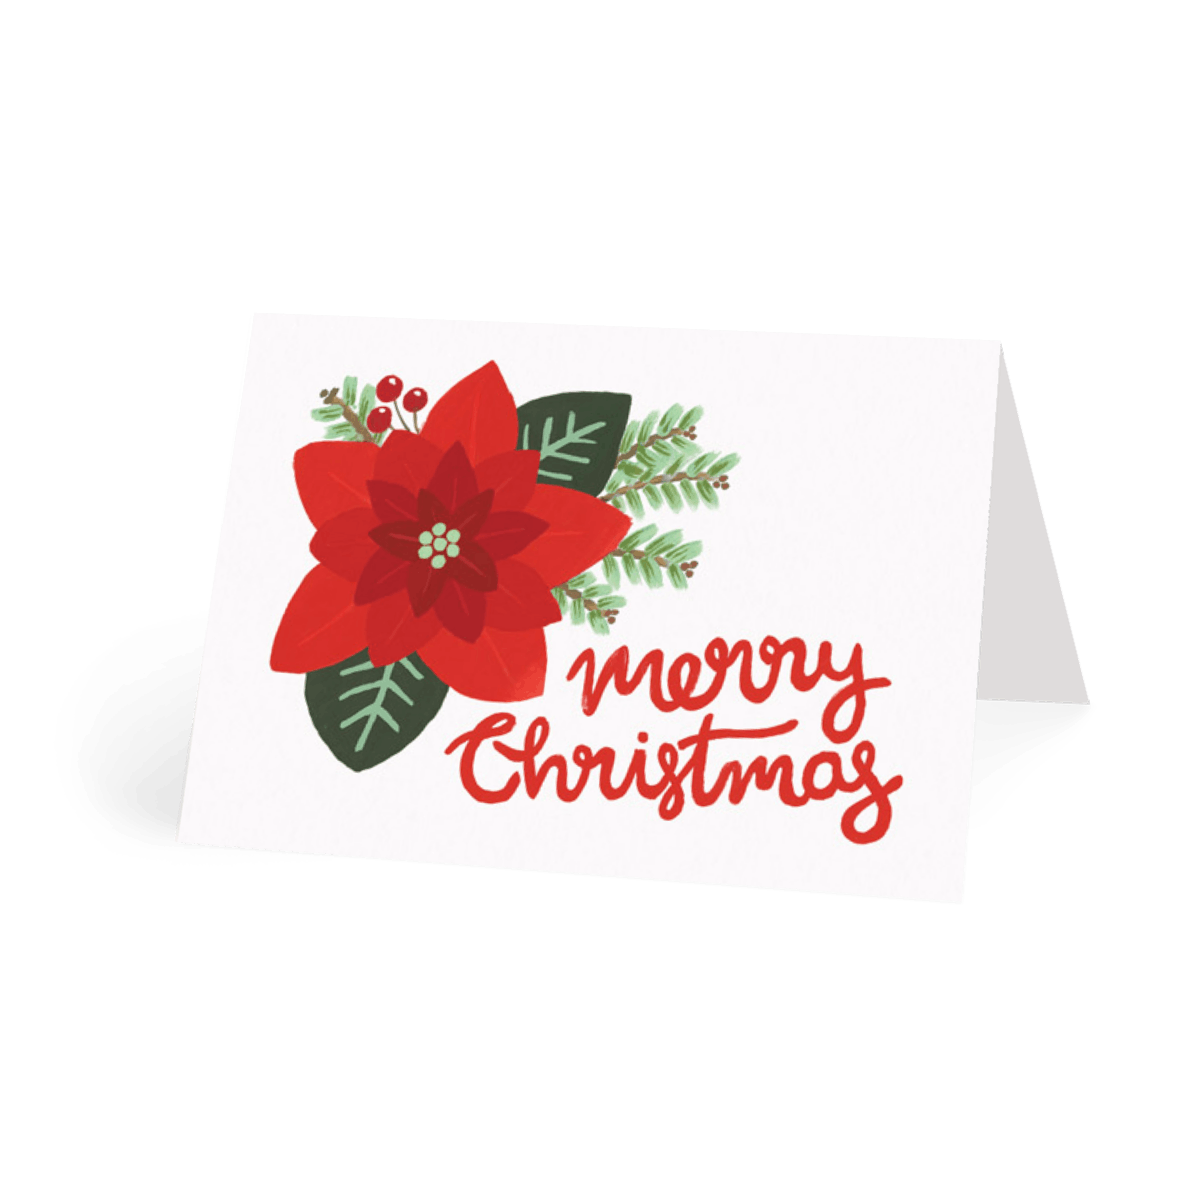 Https%3a%2f%2fwww.papier.com%2fproduct image%2f10008%2f14%2fpoinsettia 2545 front 1568147359.png?ixlib=rb 1.1